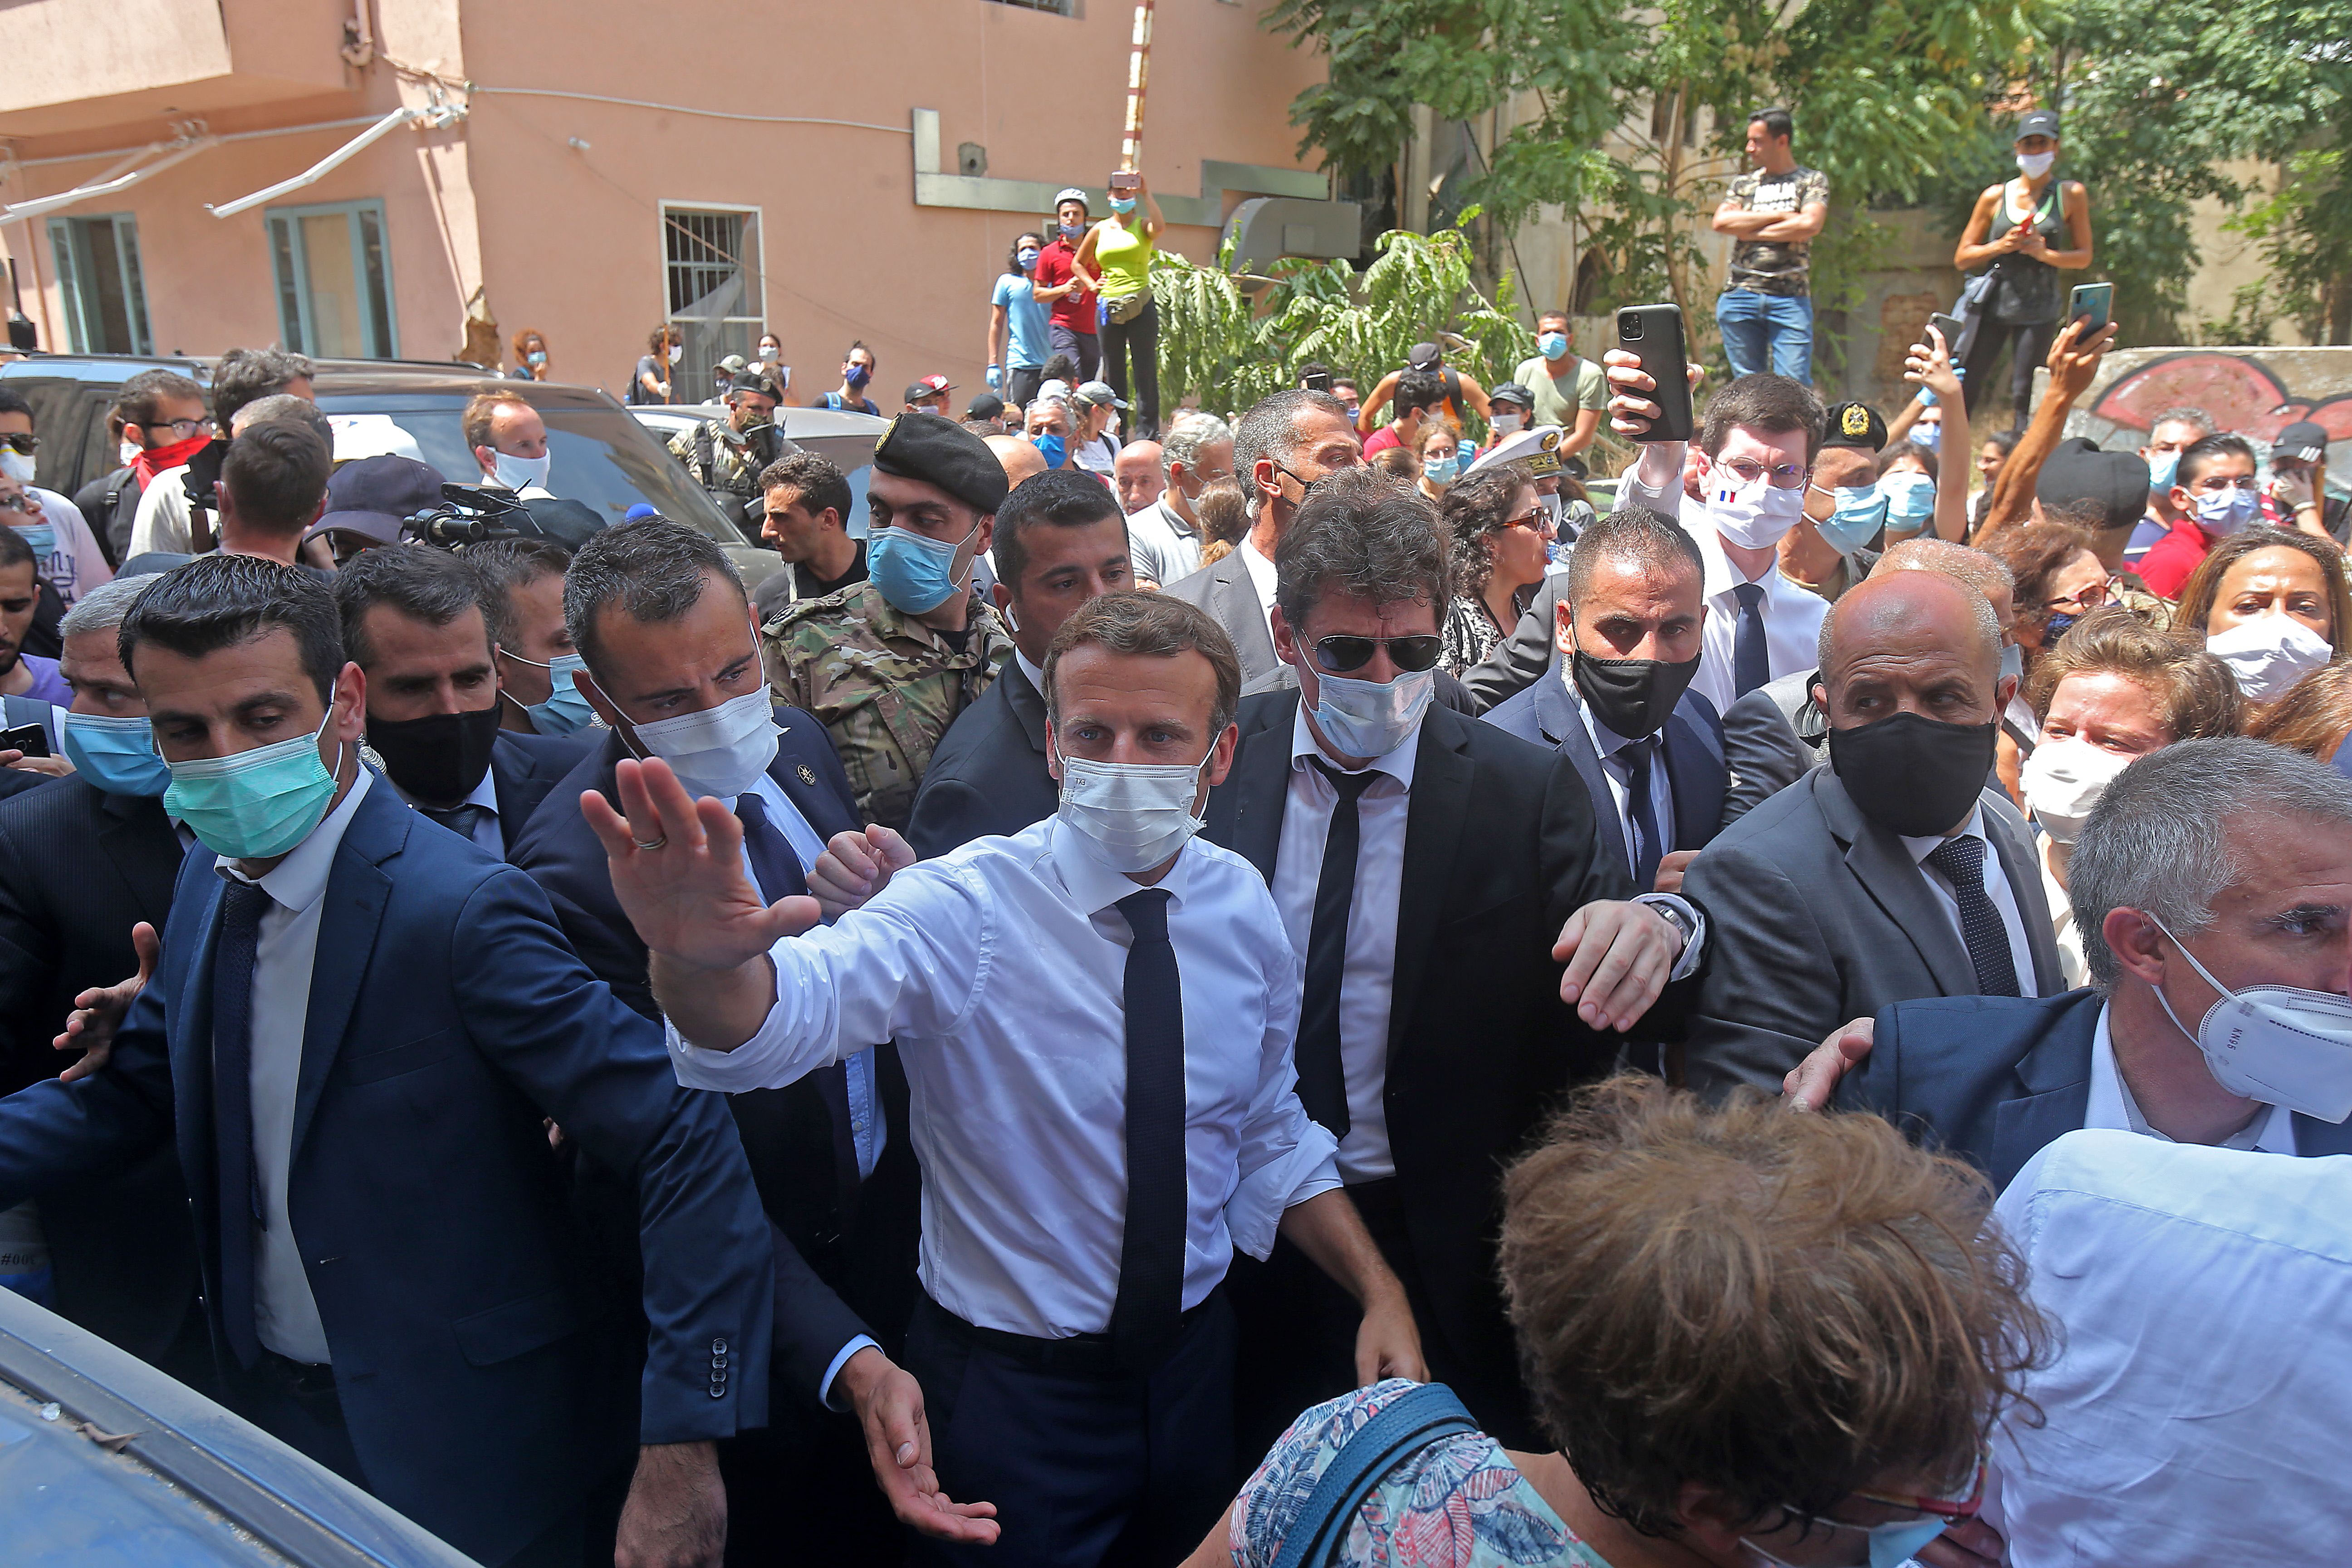 French President Emmanuel Macron, in the white shirt, greets people on August 6 as he visits the Gemmayzeh neighborhood in Beirut, Lebanon.